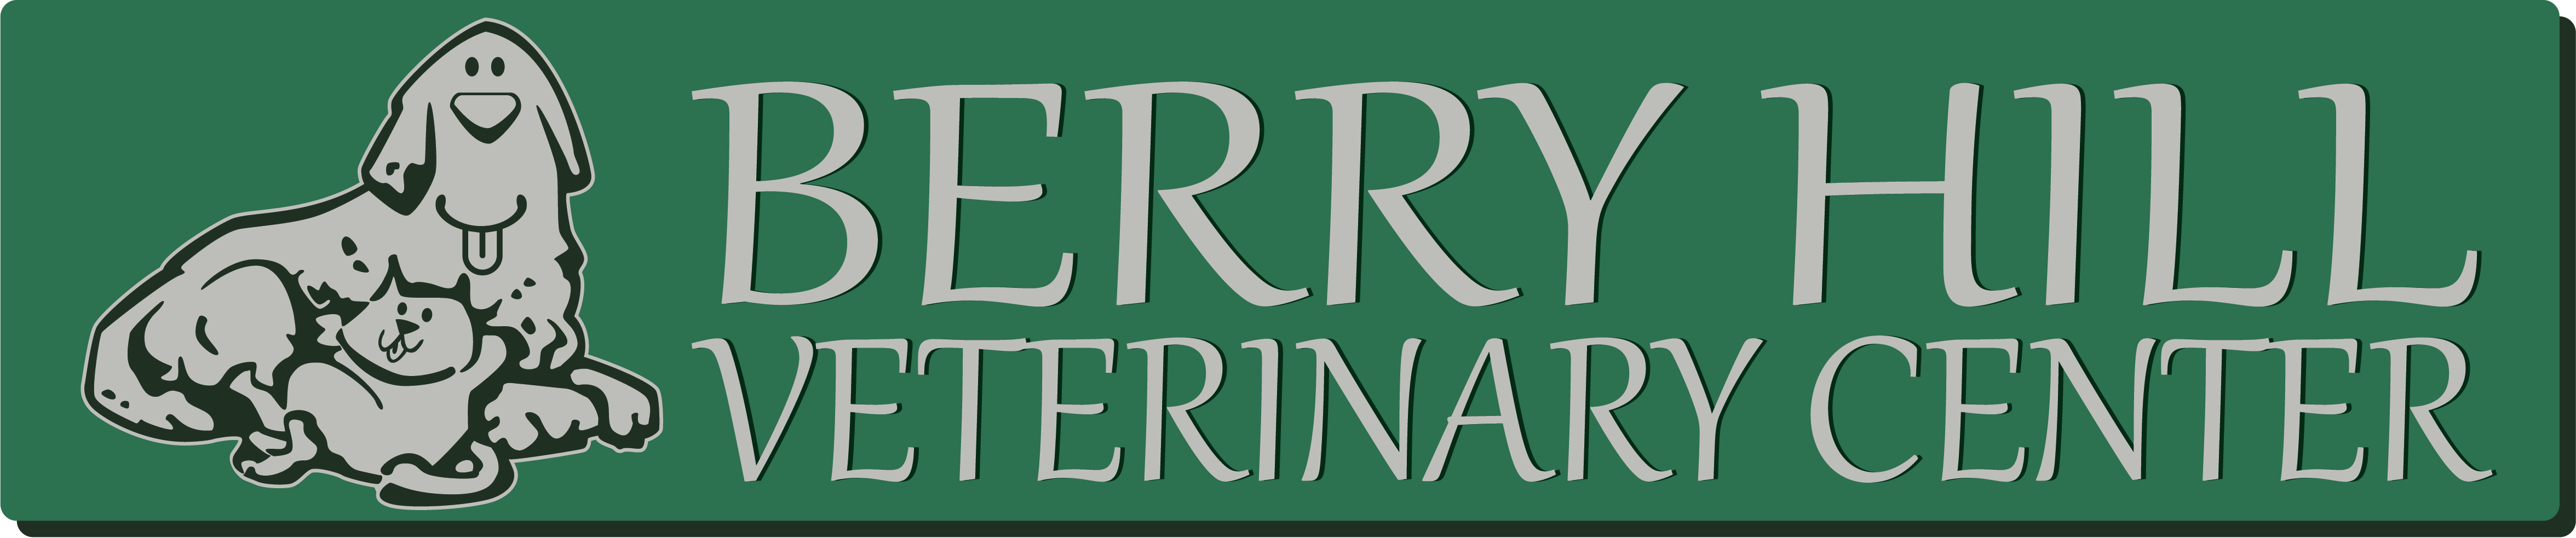 Berry Hill Veterinary Hospital | Veterinarian in Oregon City, OR